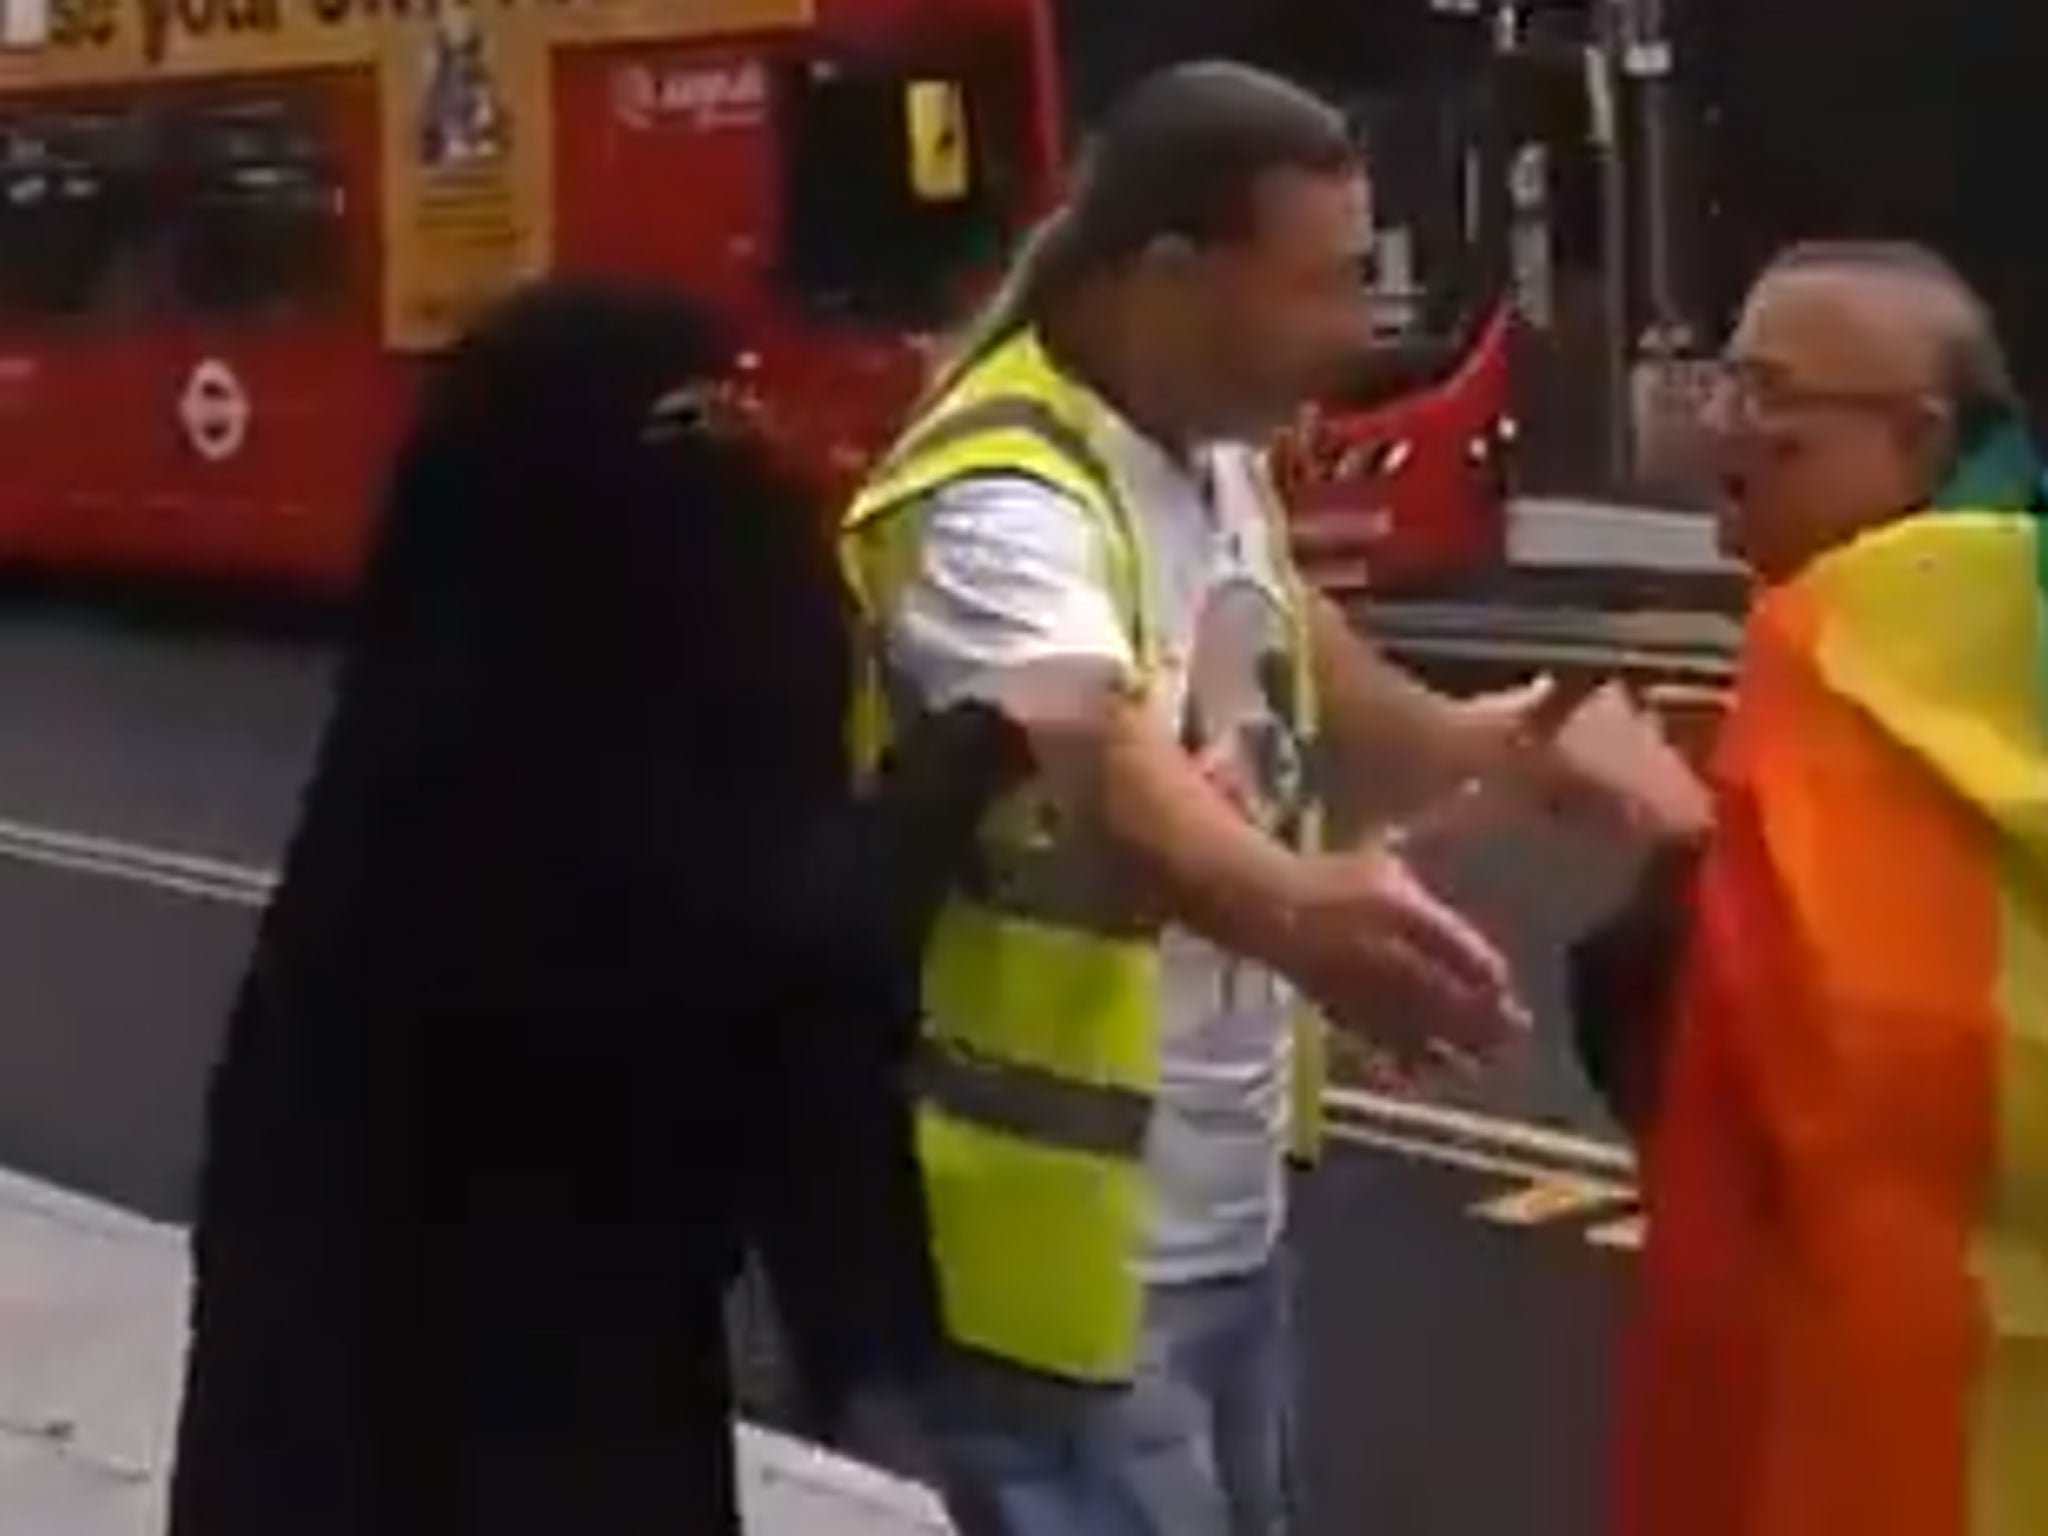 Woman verbally abuses Pride marcher in suspected hate crime in London: 'You despicable people. Shame on you'